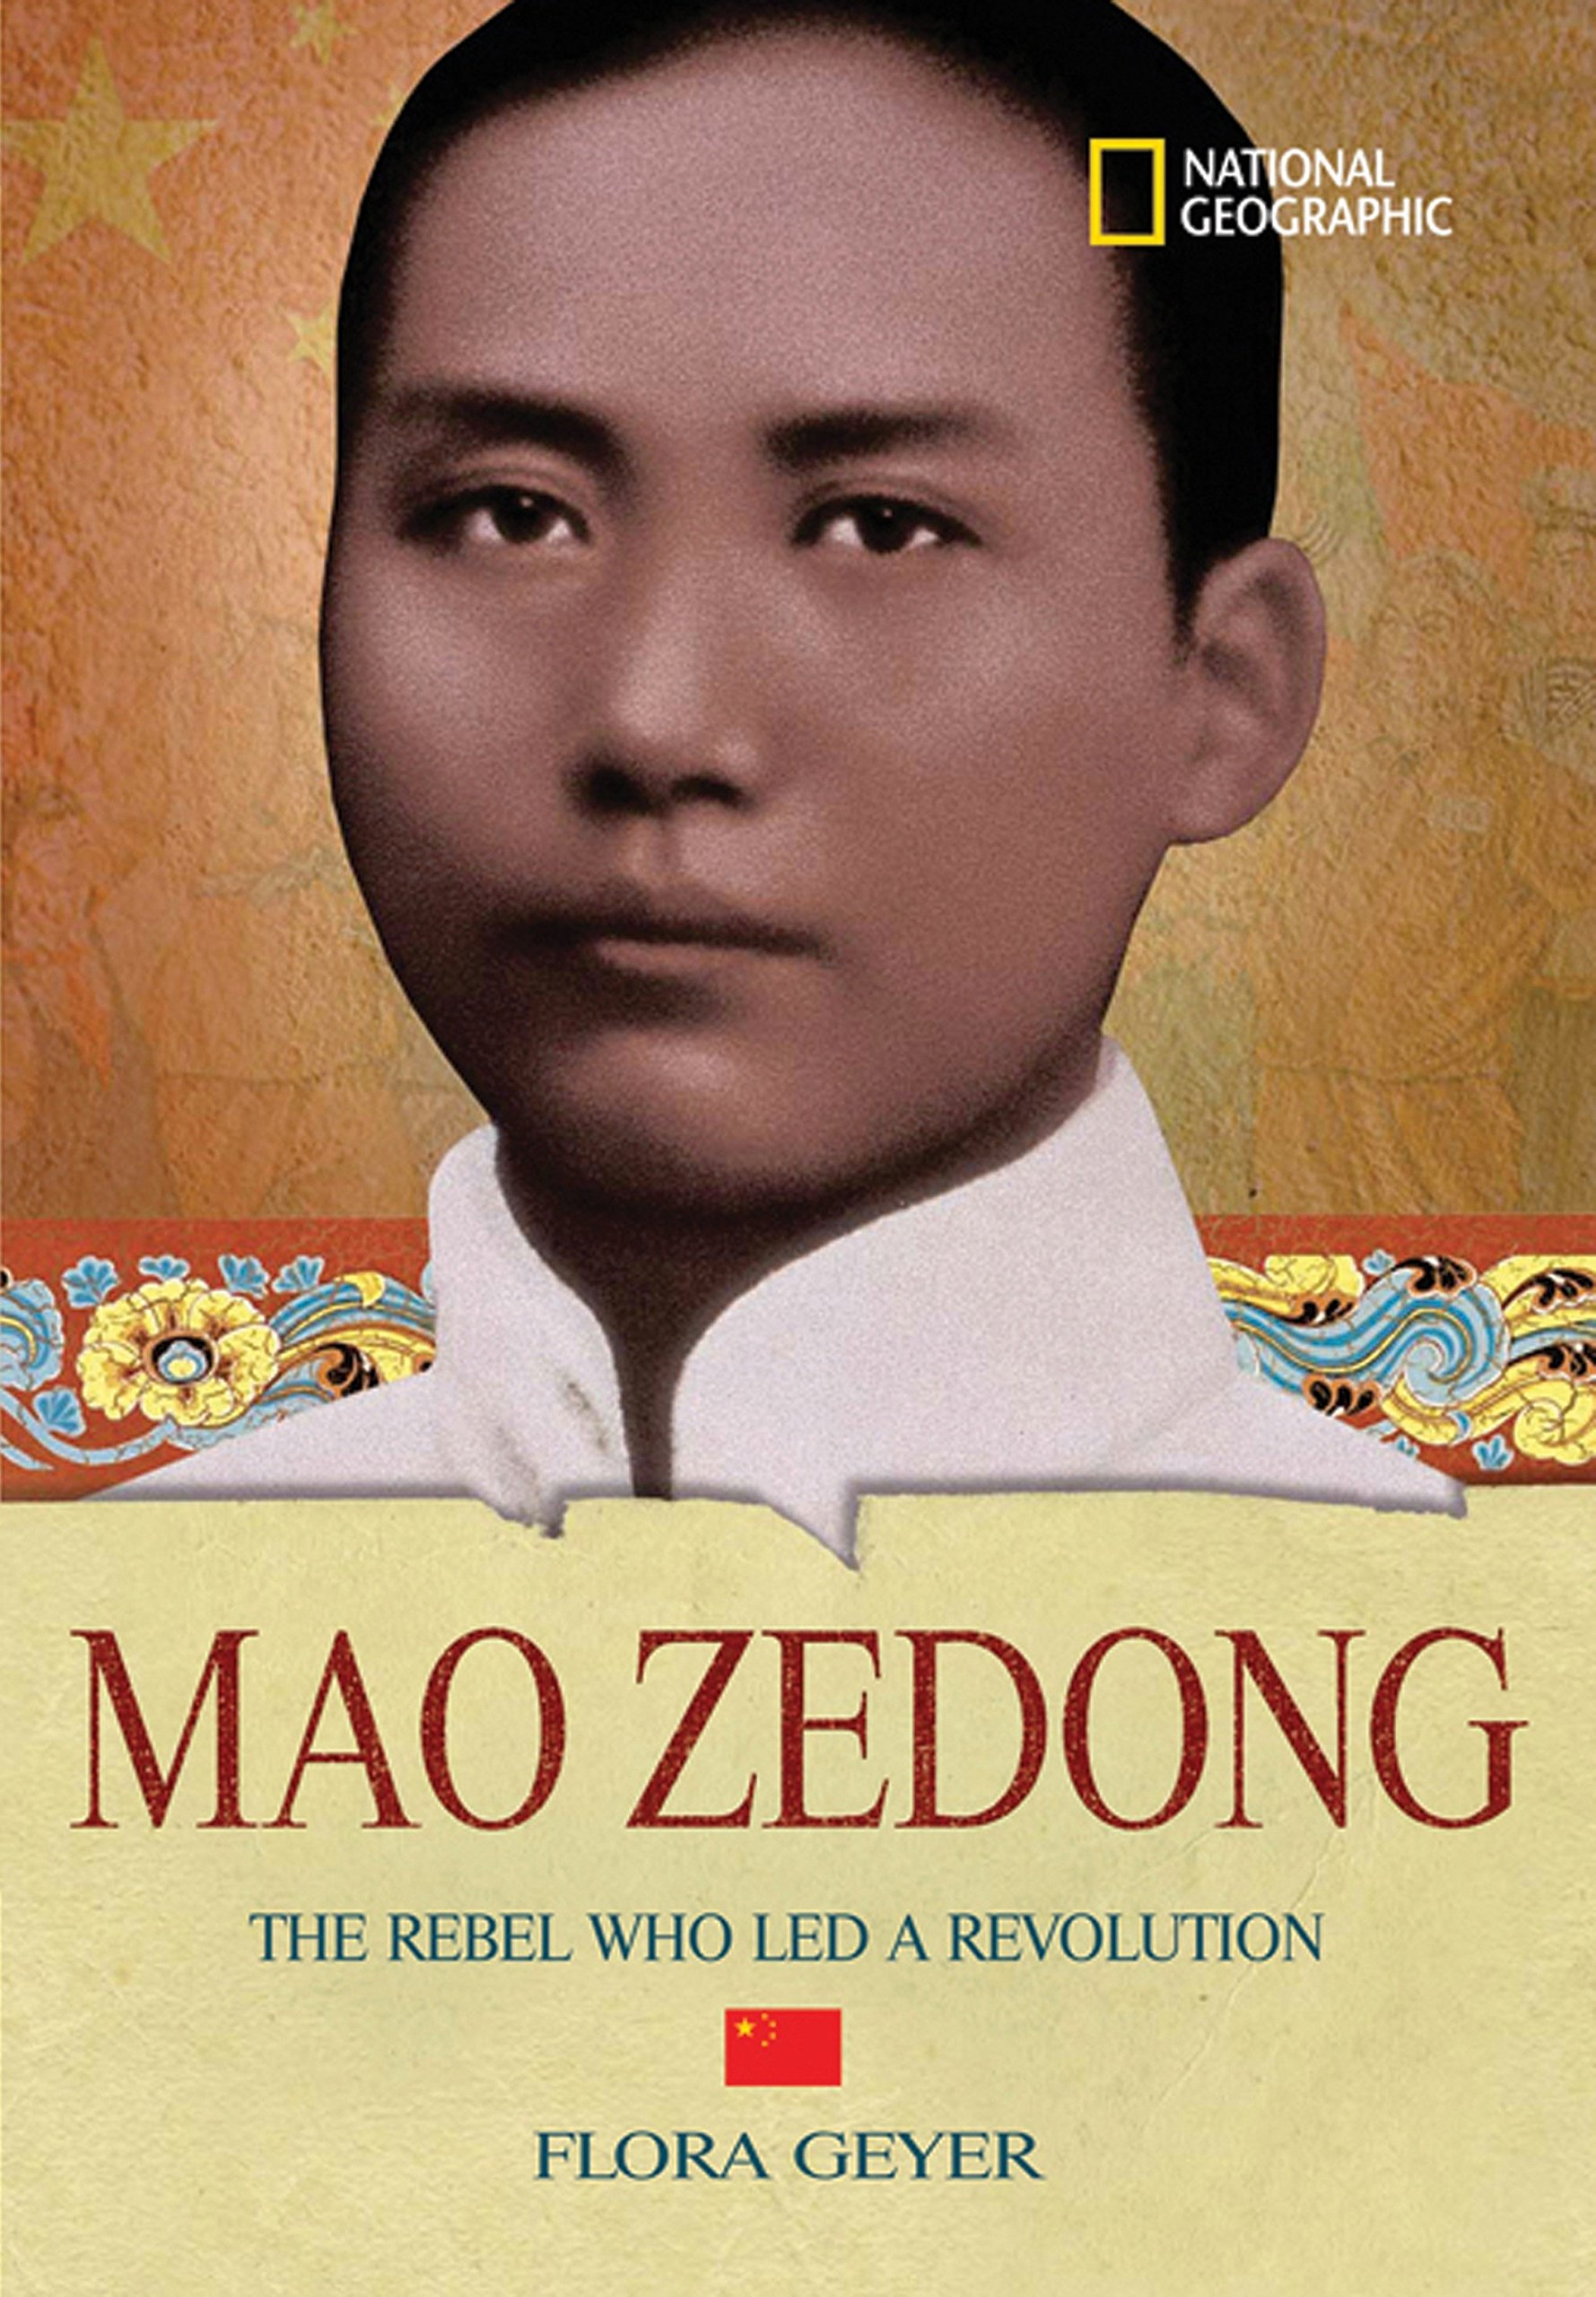 World History Biographies: Mao Zedong: The Rebel Who Led a Revolution (National Geographic World History Biographies) ebook